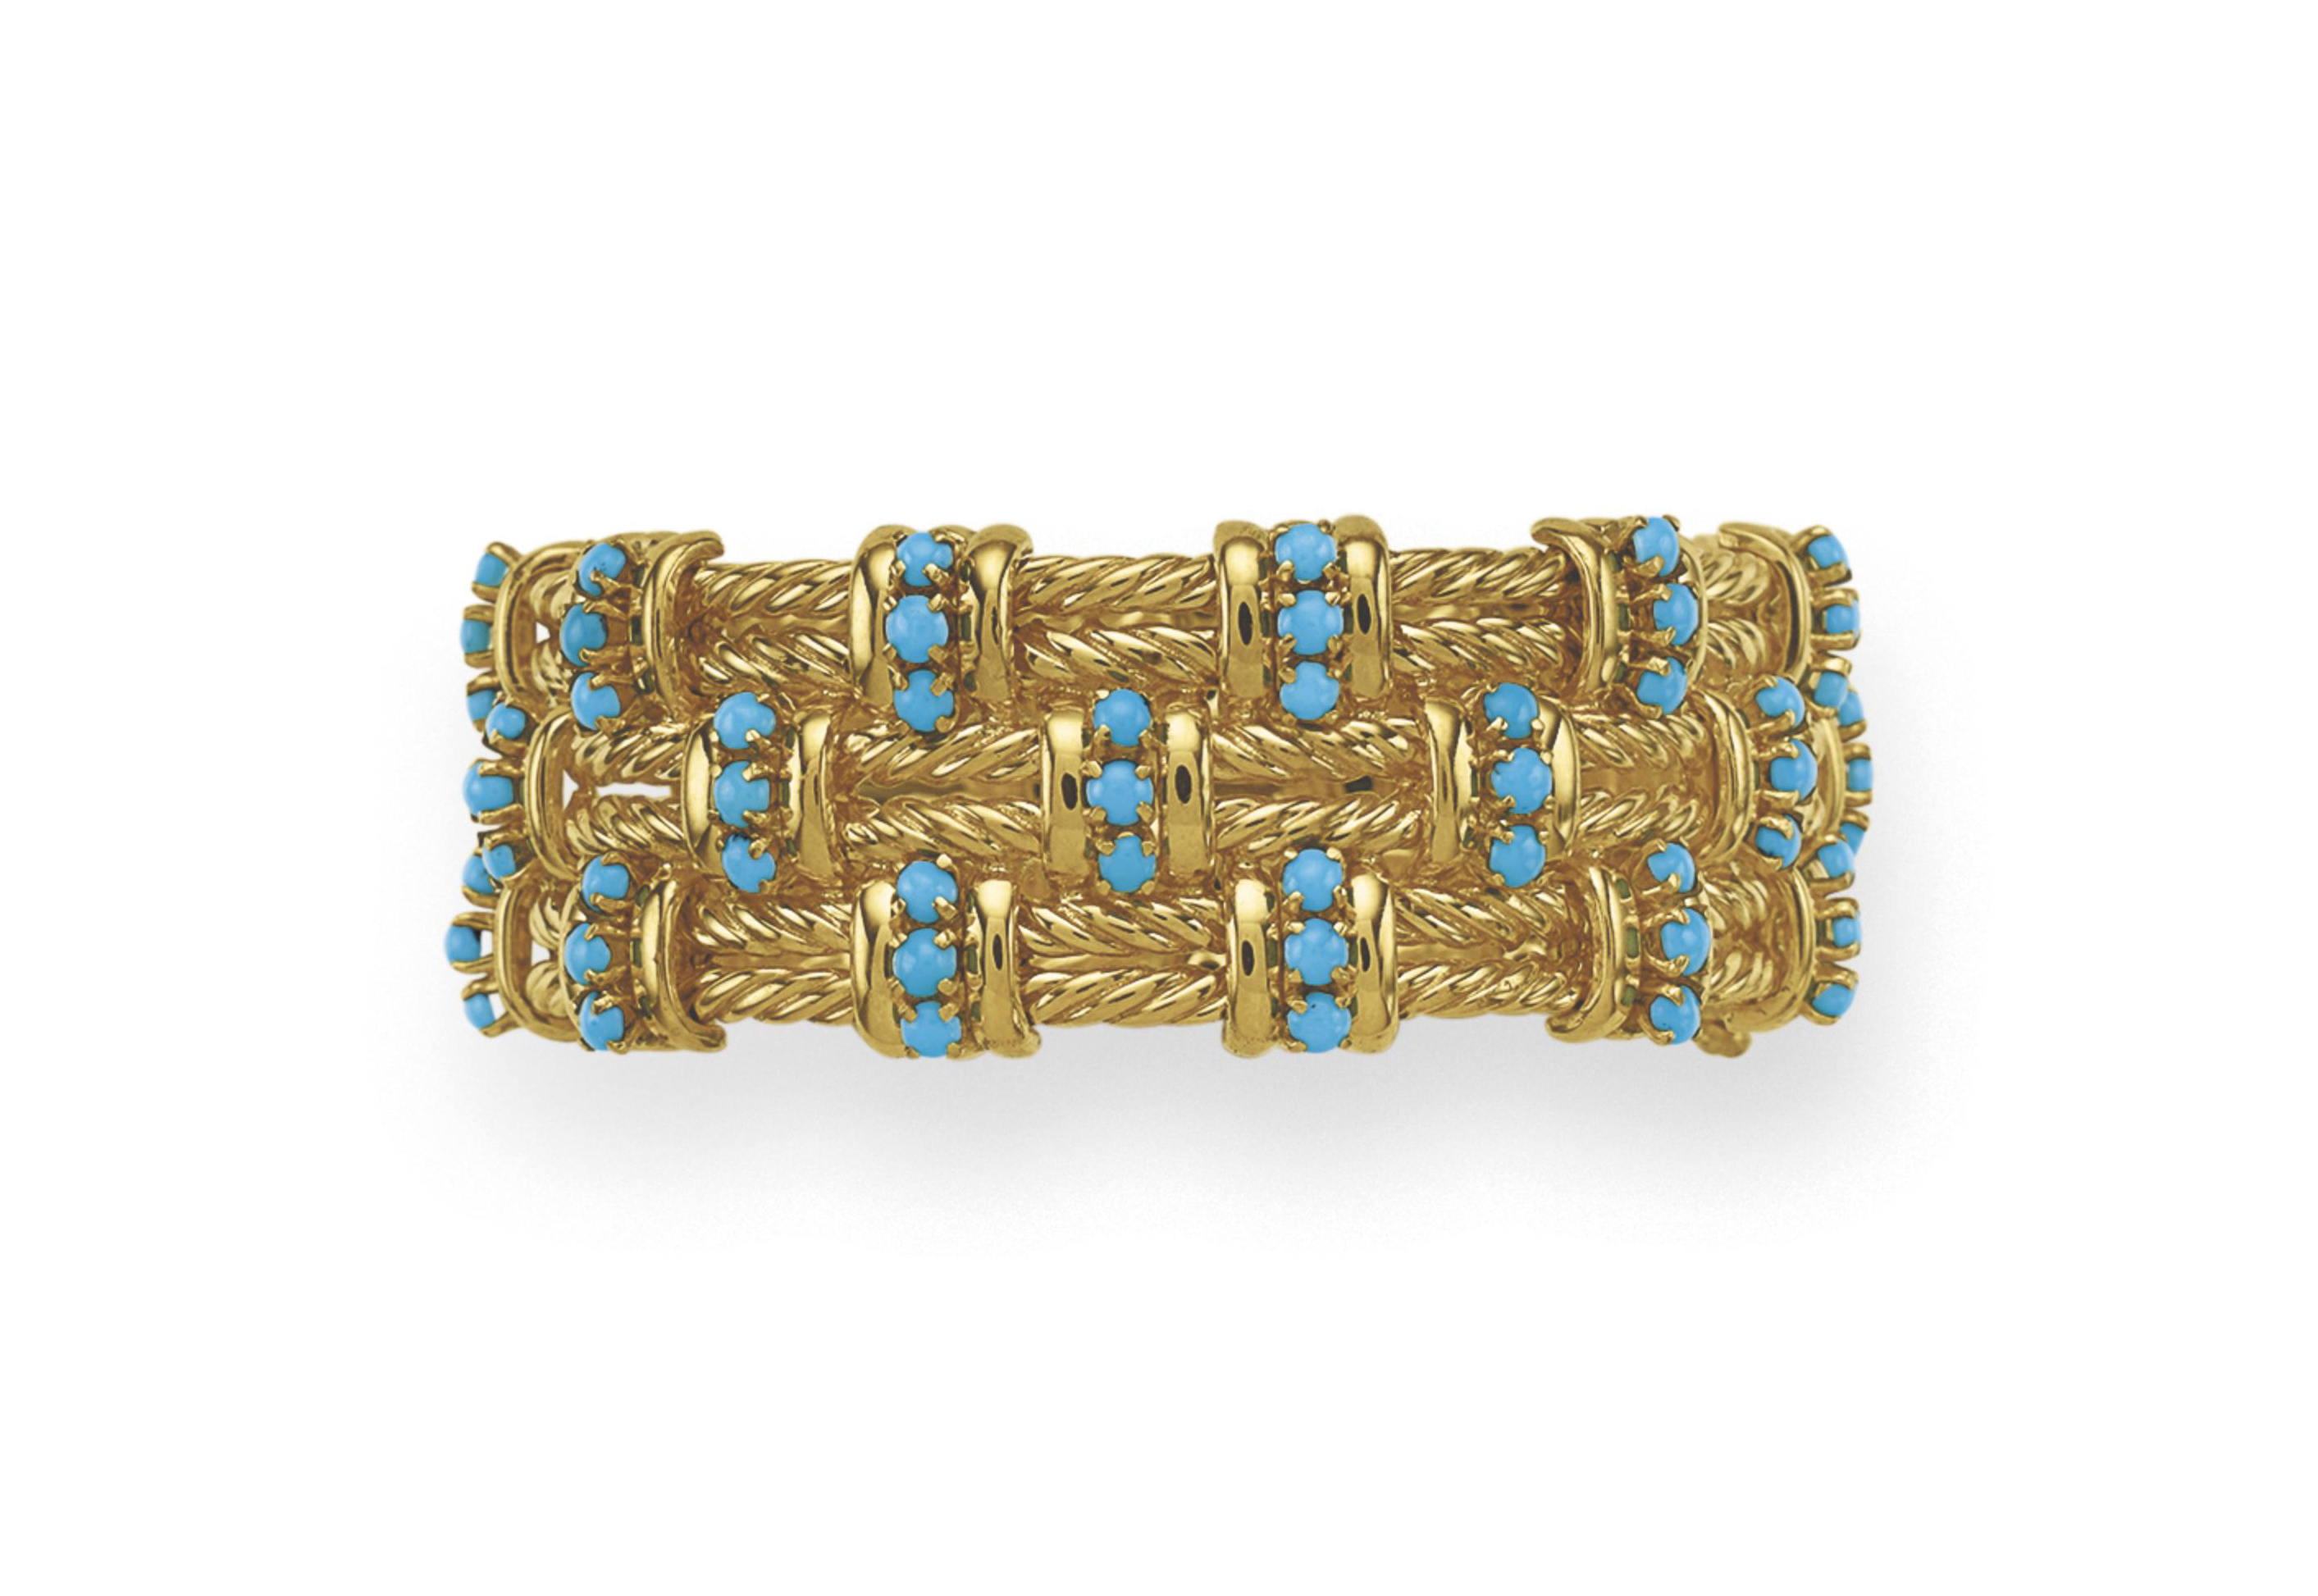 A TURQUOISE AND GOLD BRACELET,